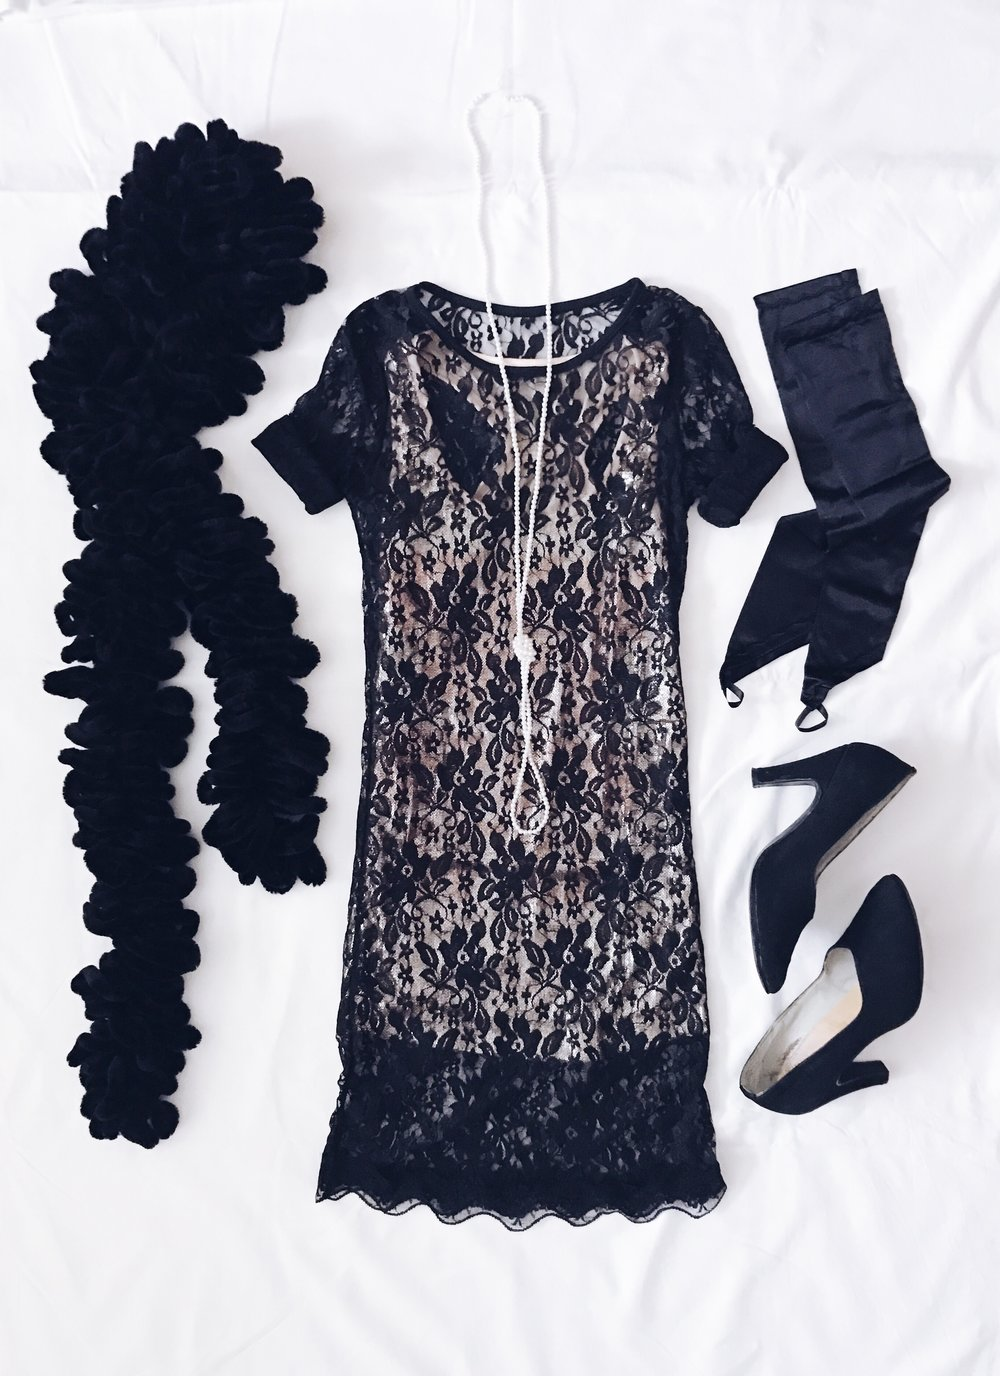 Lace dress: Shein  Seqined top: Terranova style